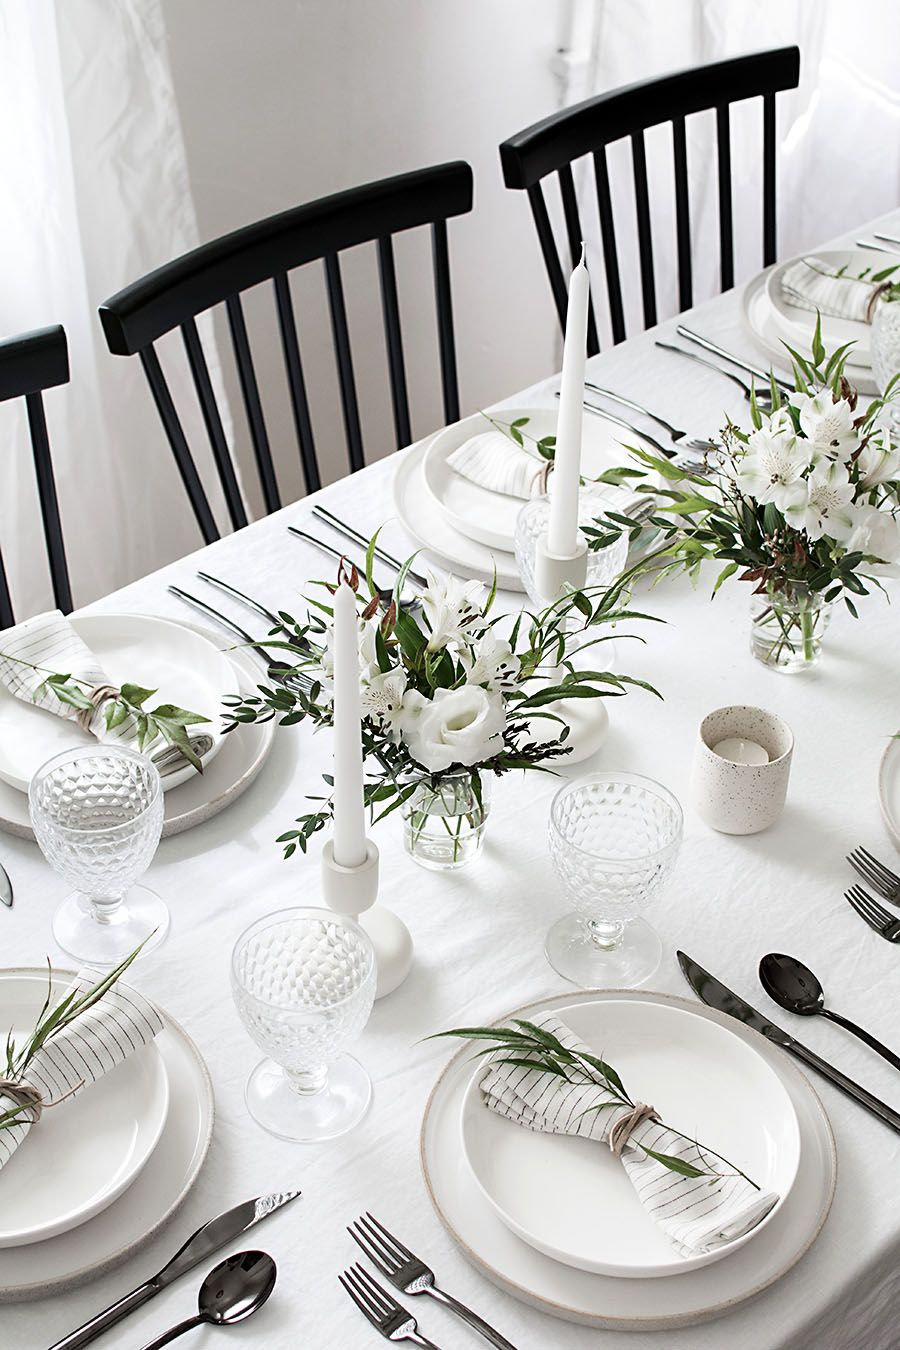 5 tips to set a simple and modern tablescape minimal for Simple table setting